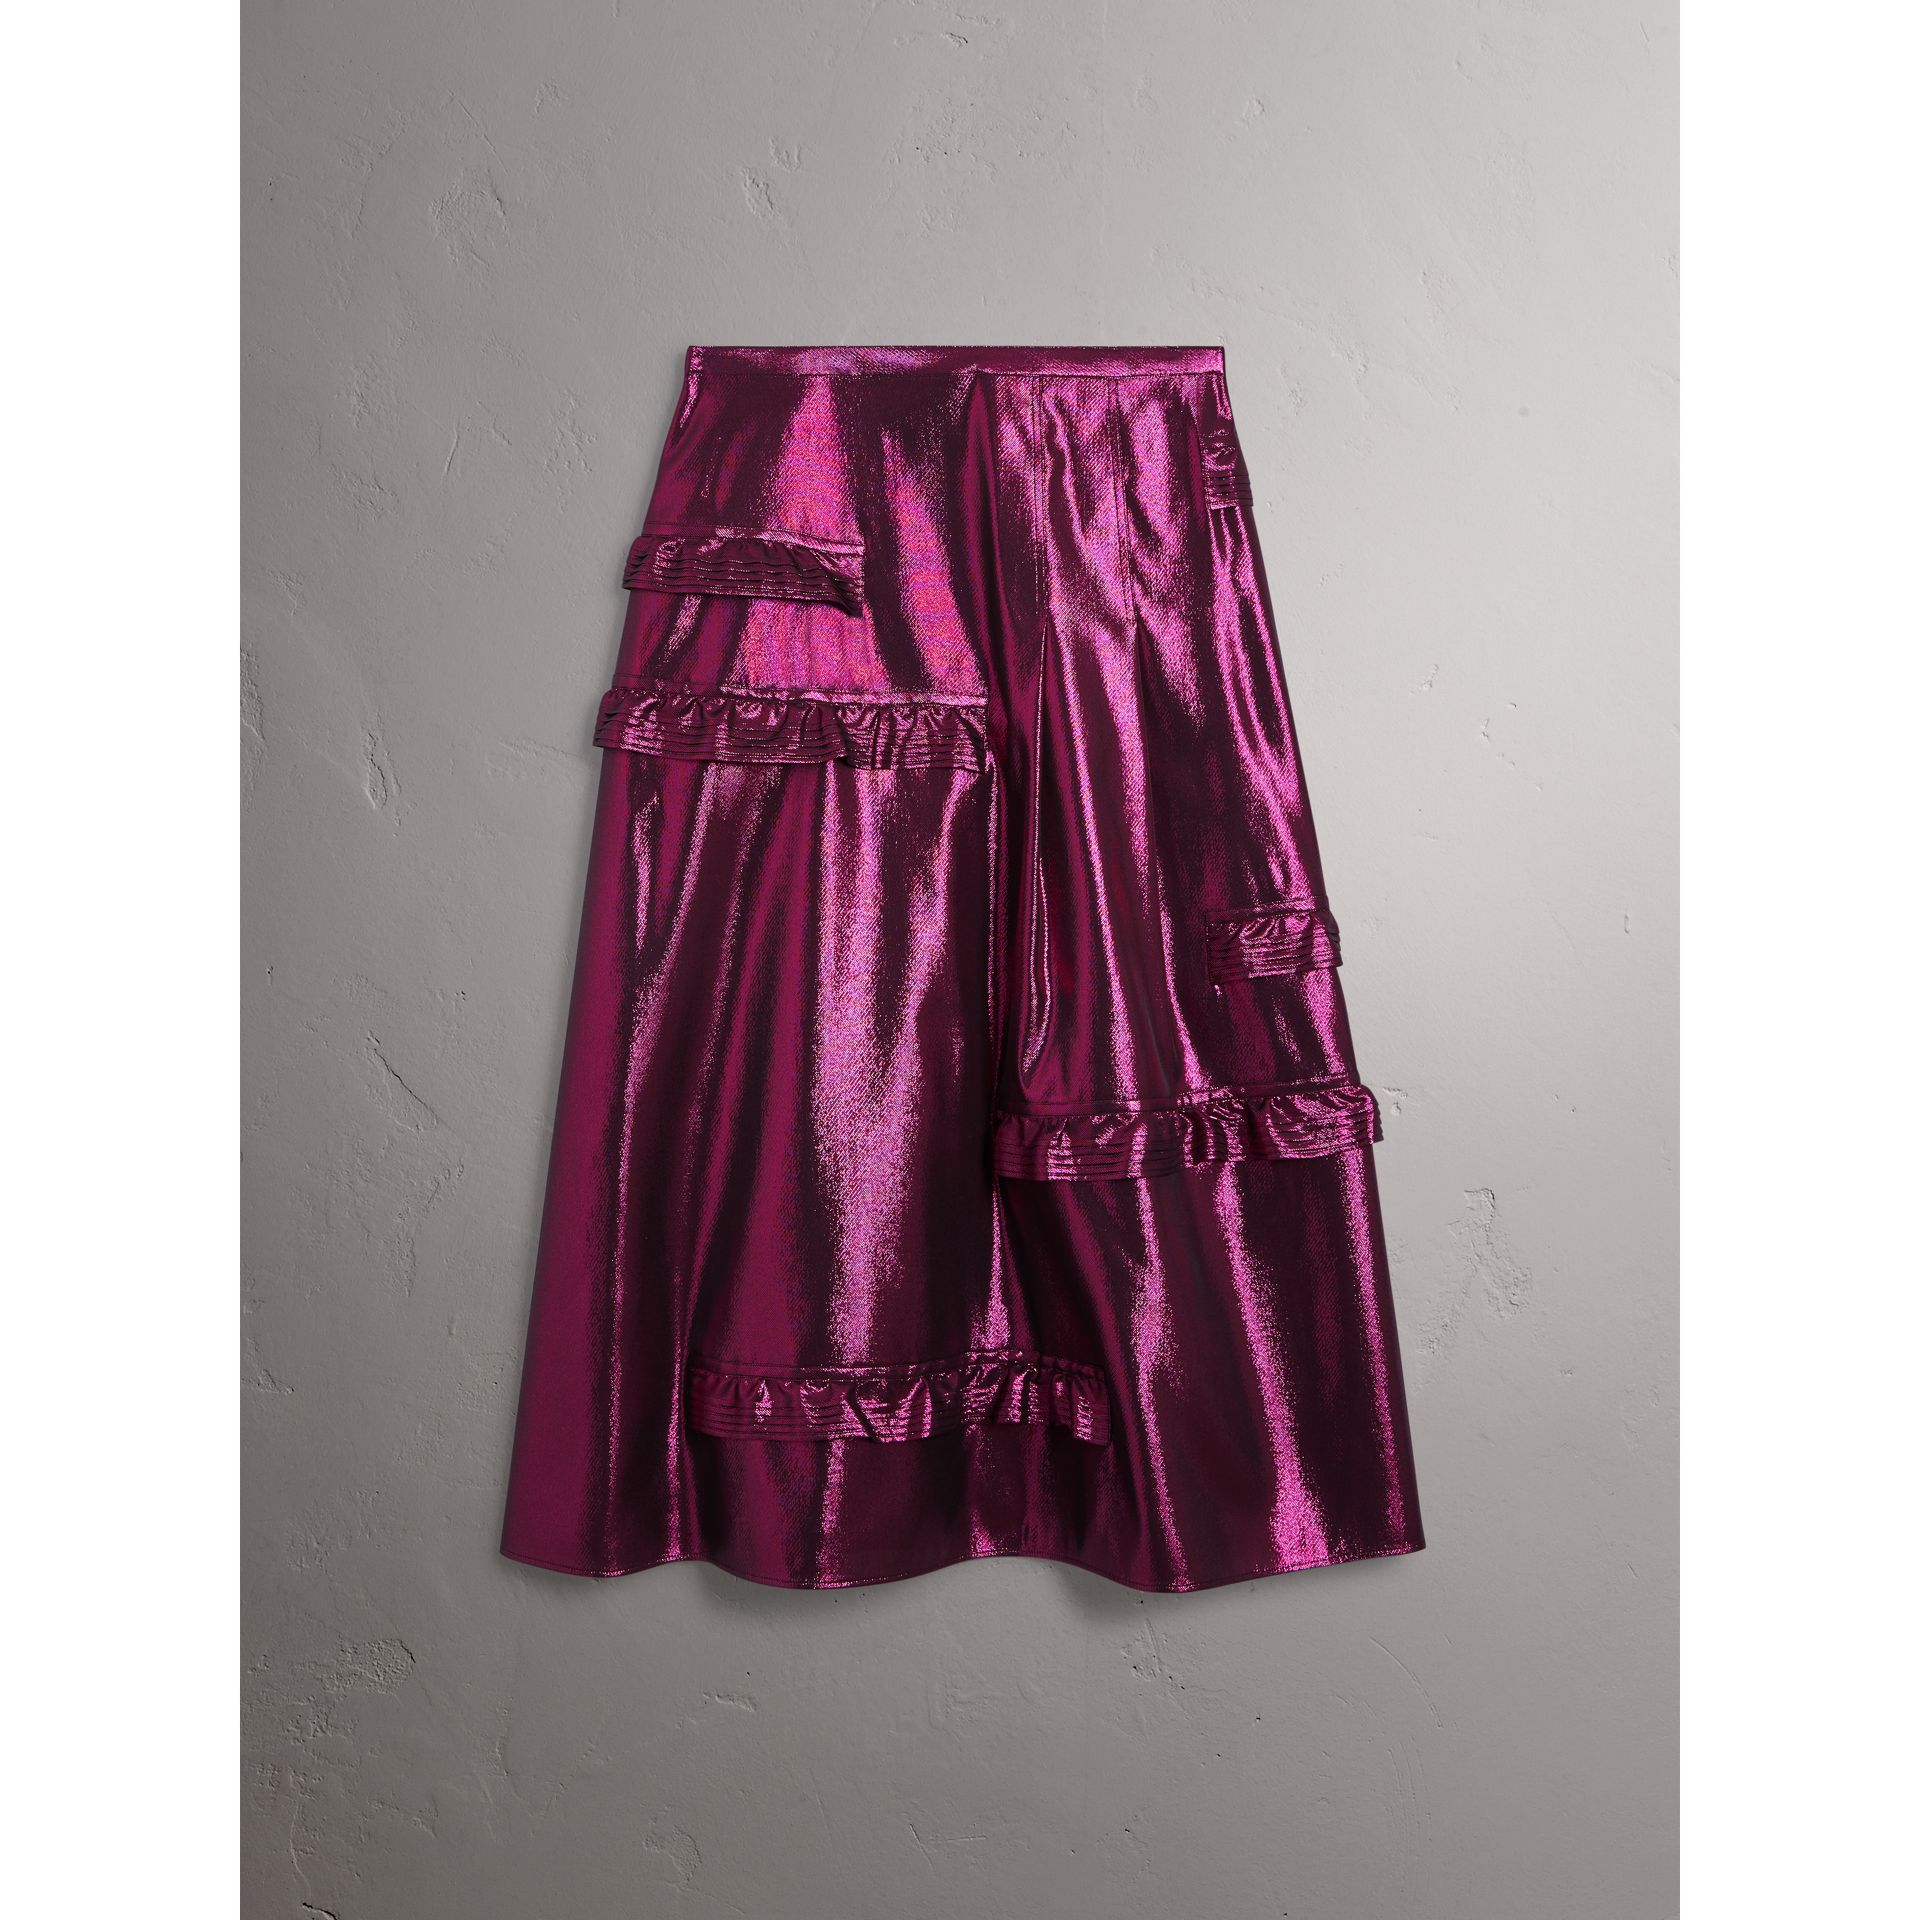 Ruffle Detail Lamé Skirt in Bright Fuchsia - Women | Burberry United Kingdom - gallery image 3